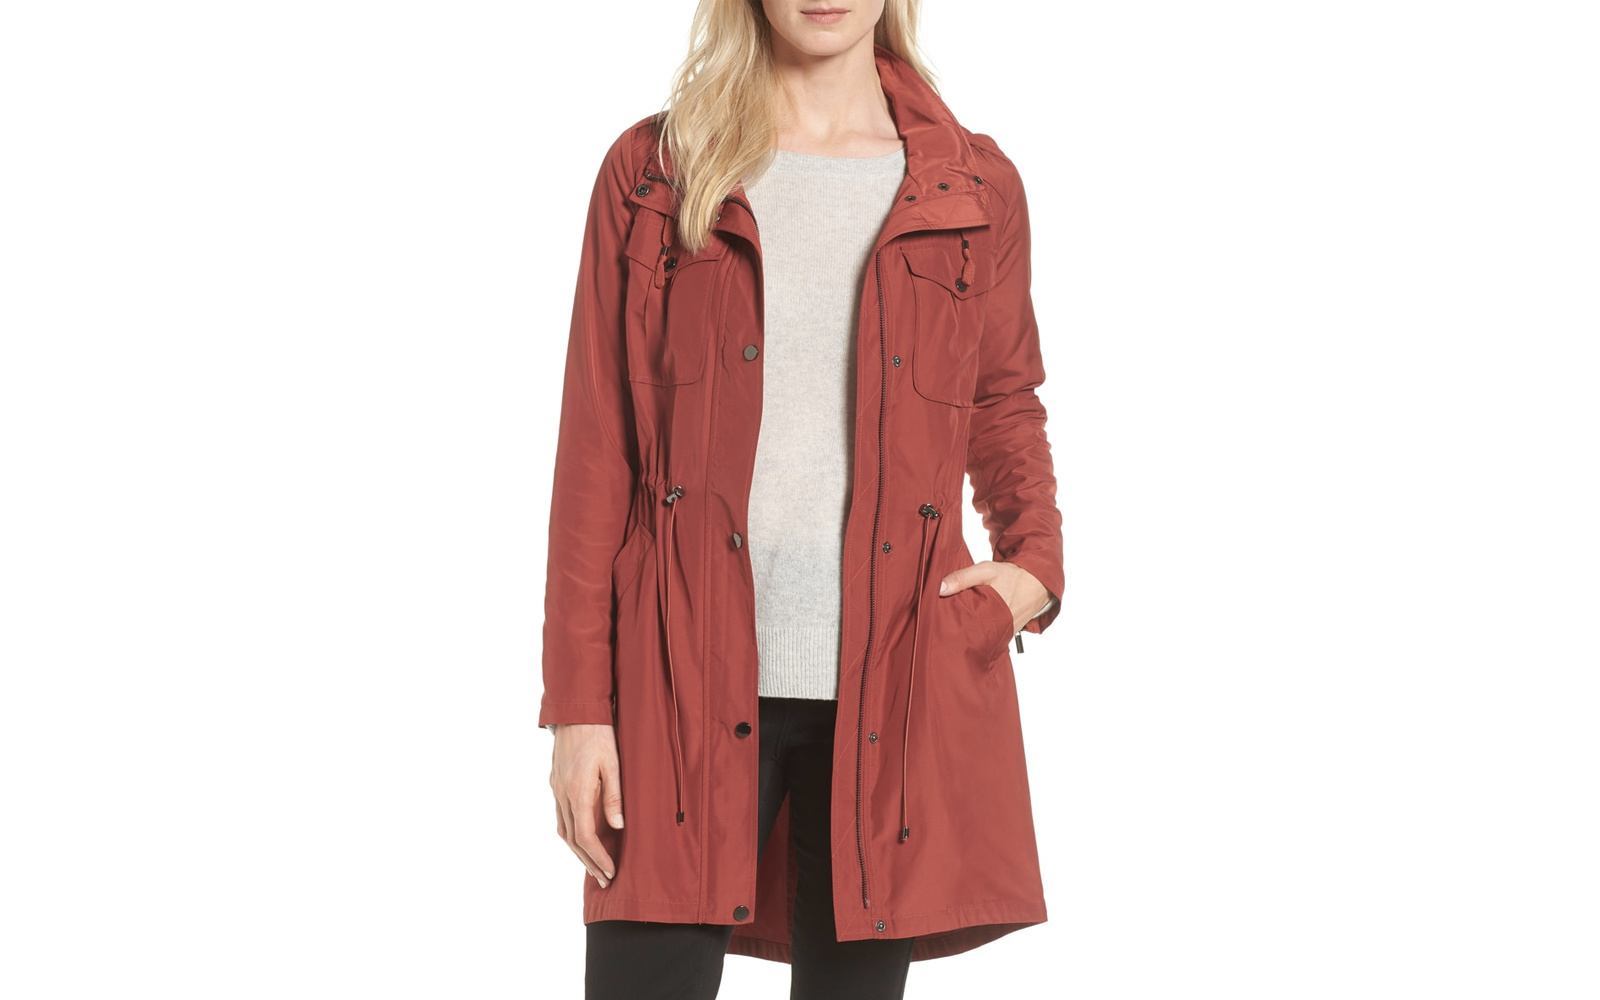 Best Waterproof Fashion From the Nordstrom Sale